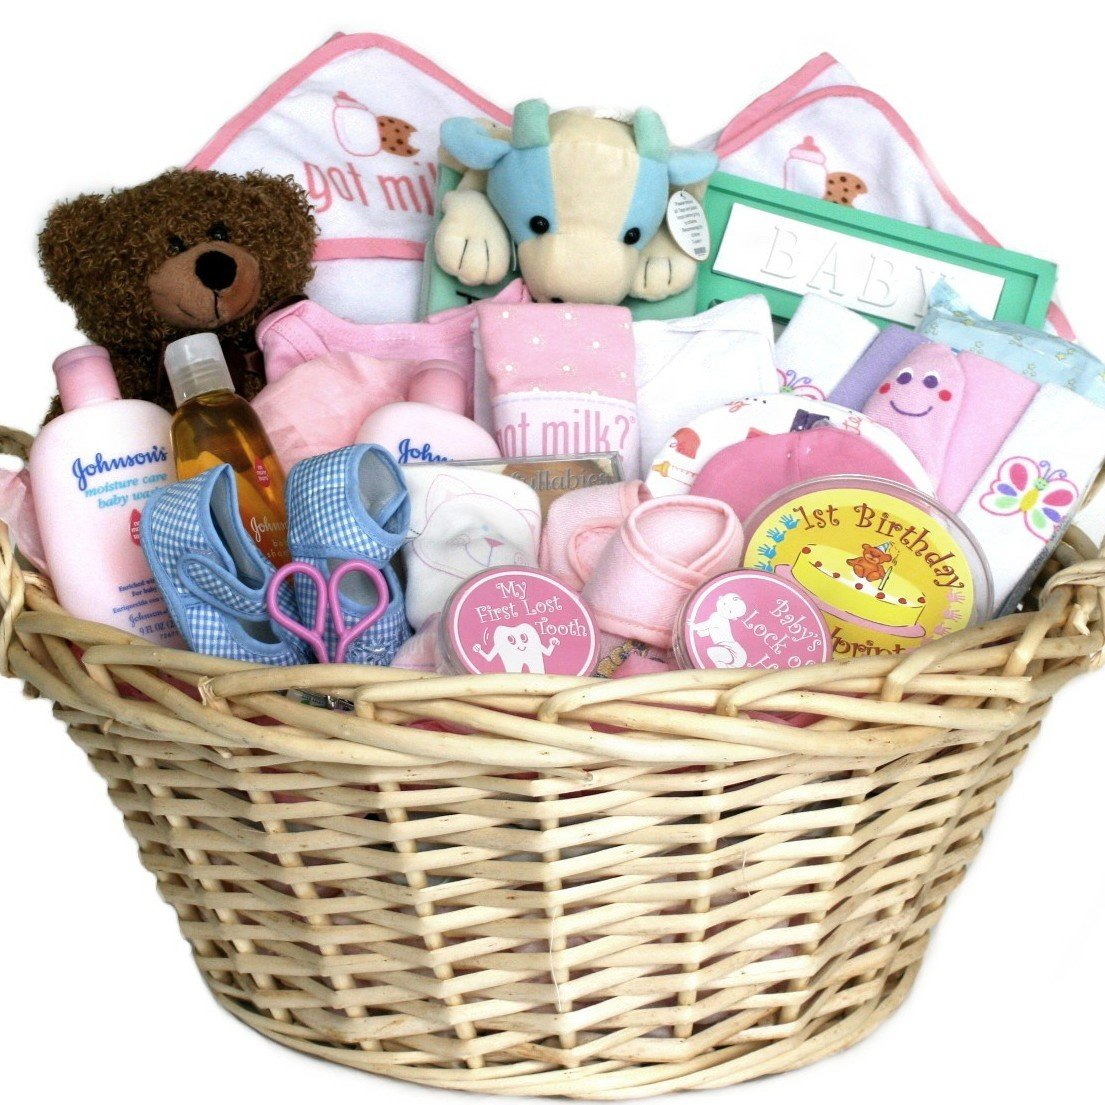 Amazon deluxe baby gift basket pink for girls shower or amazon deluxe baby gift basket pink for girls shower or christmas holiday gift idea for newborns baby negle Images